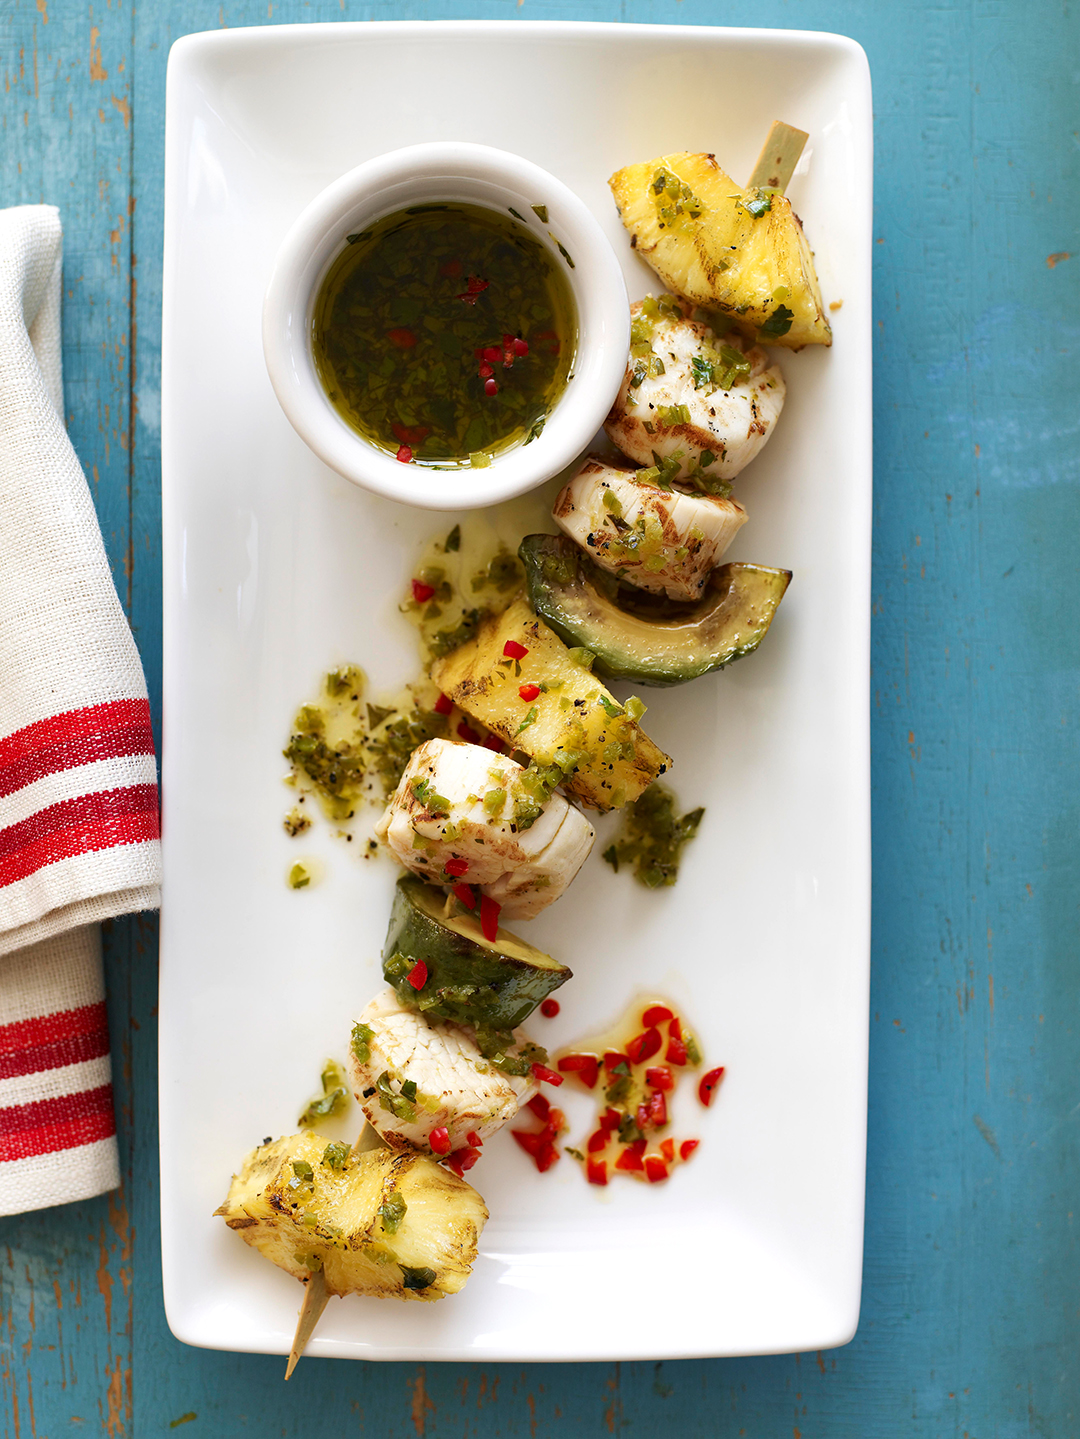 Pineapple and Scallops with dipping sauce